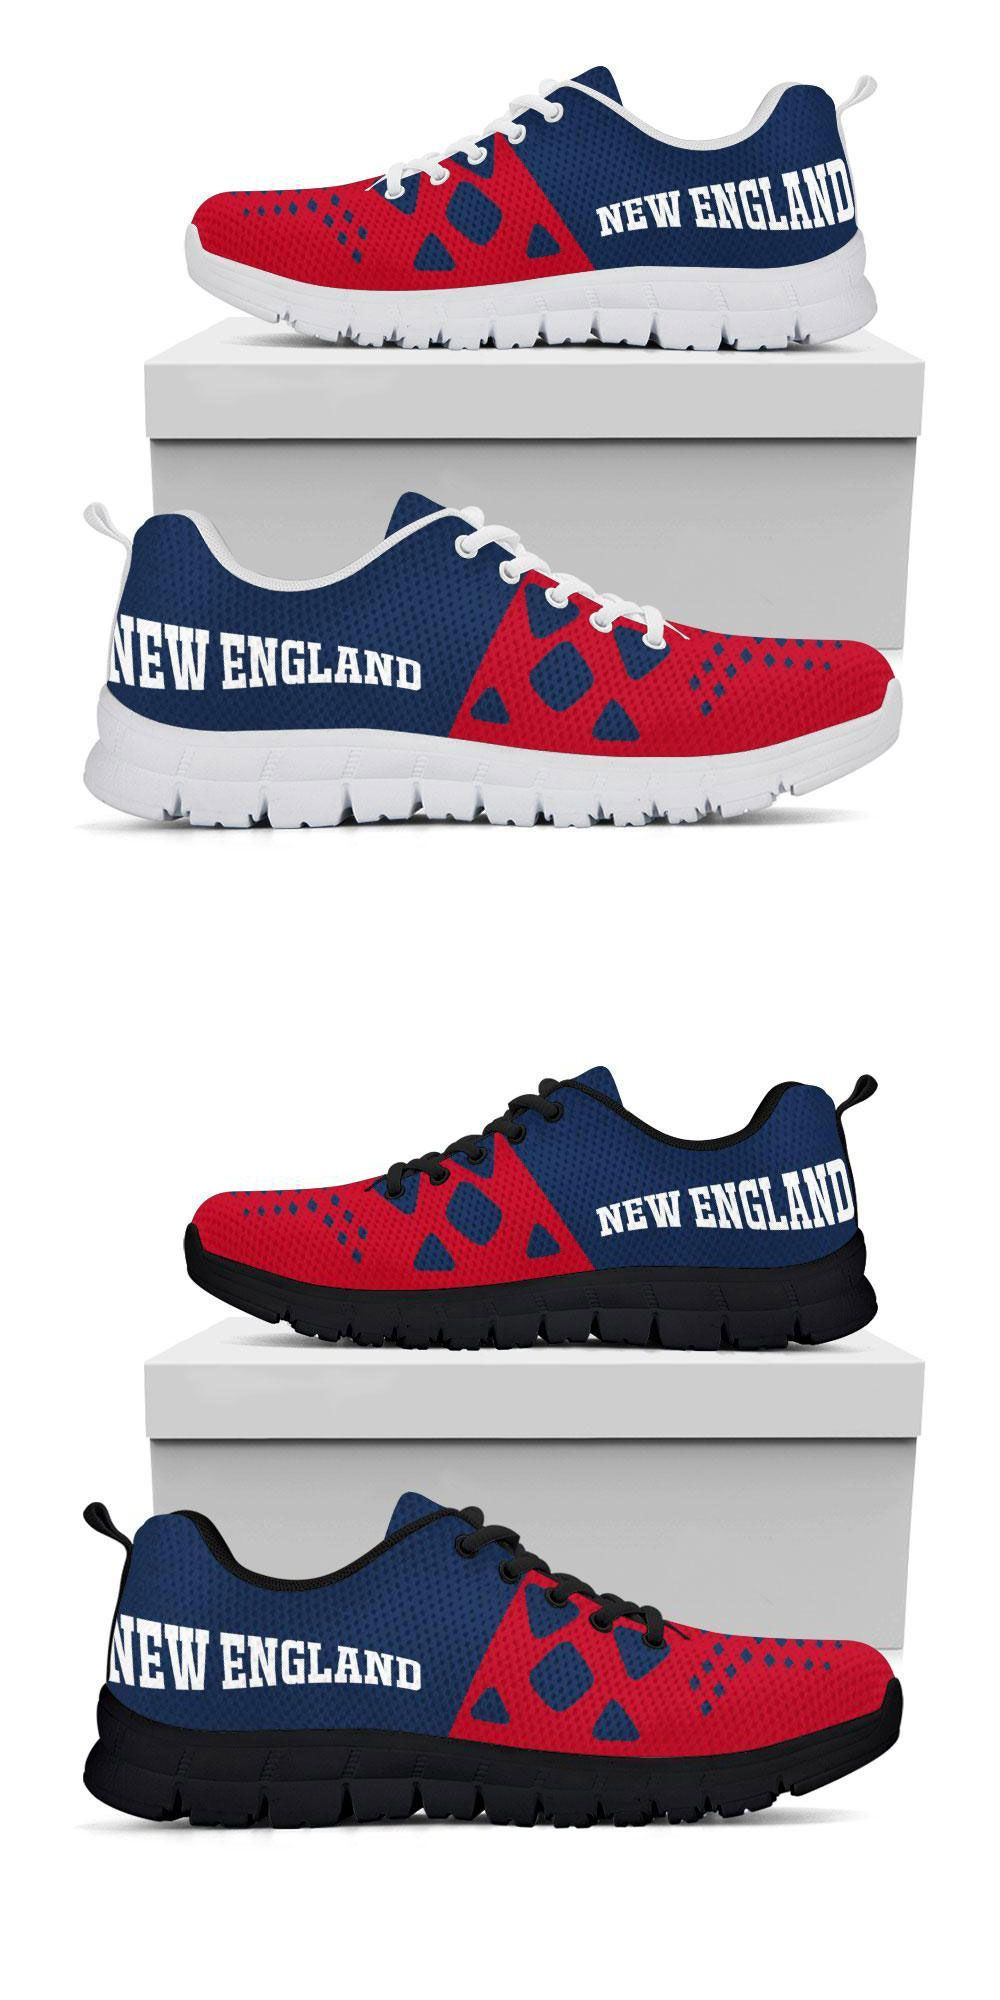 34c3ab3e39 New England Patriots Colors - Running Shoes Sport the New England Patriots  colors while you train to take on the world. In the gym or on the streets  these ...